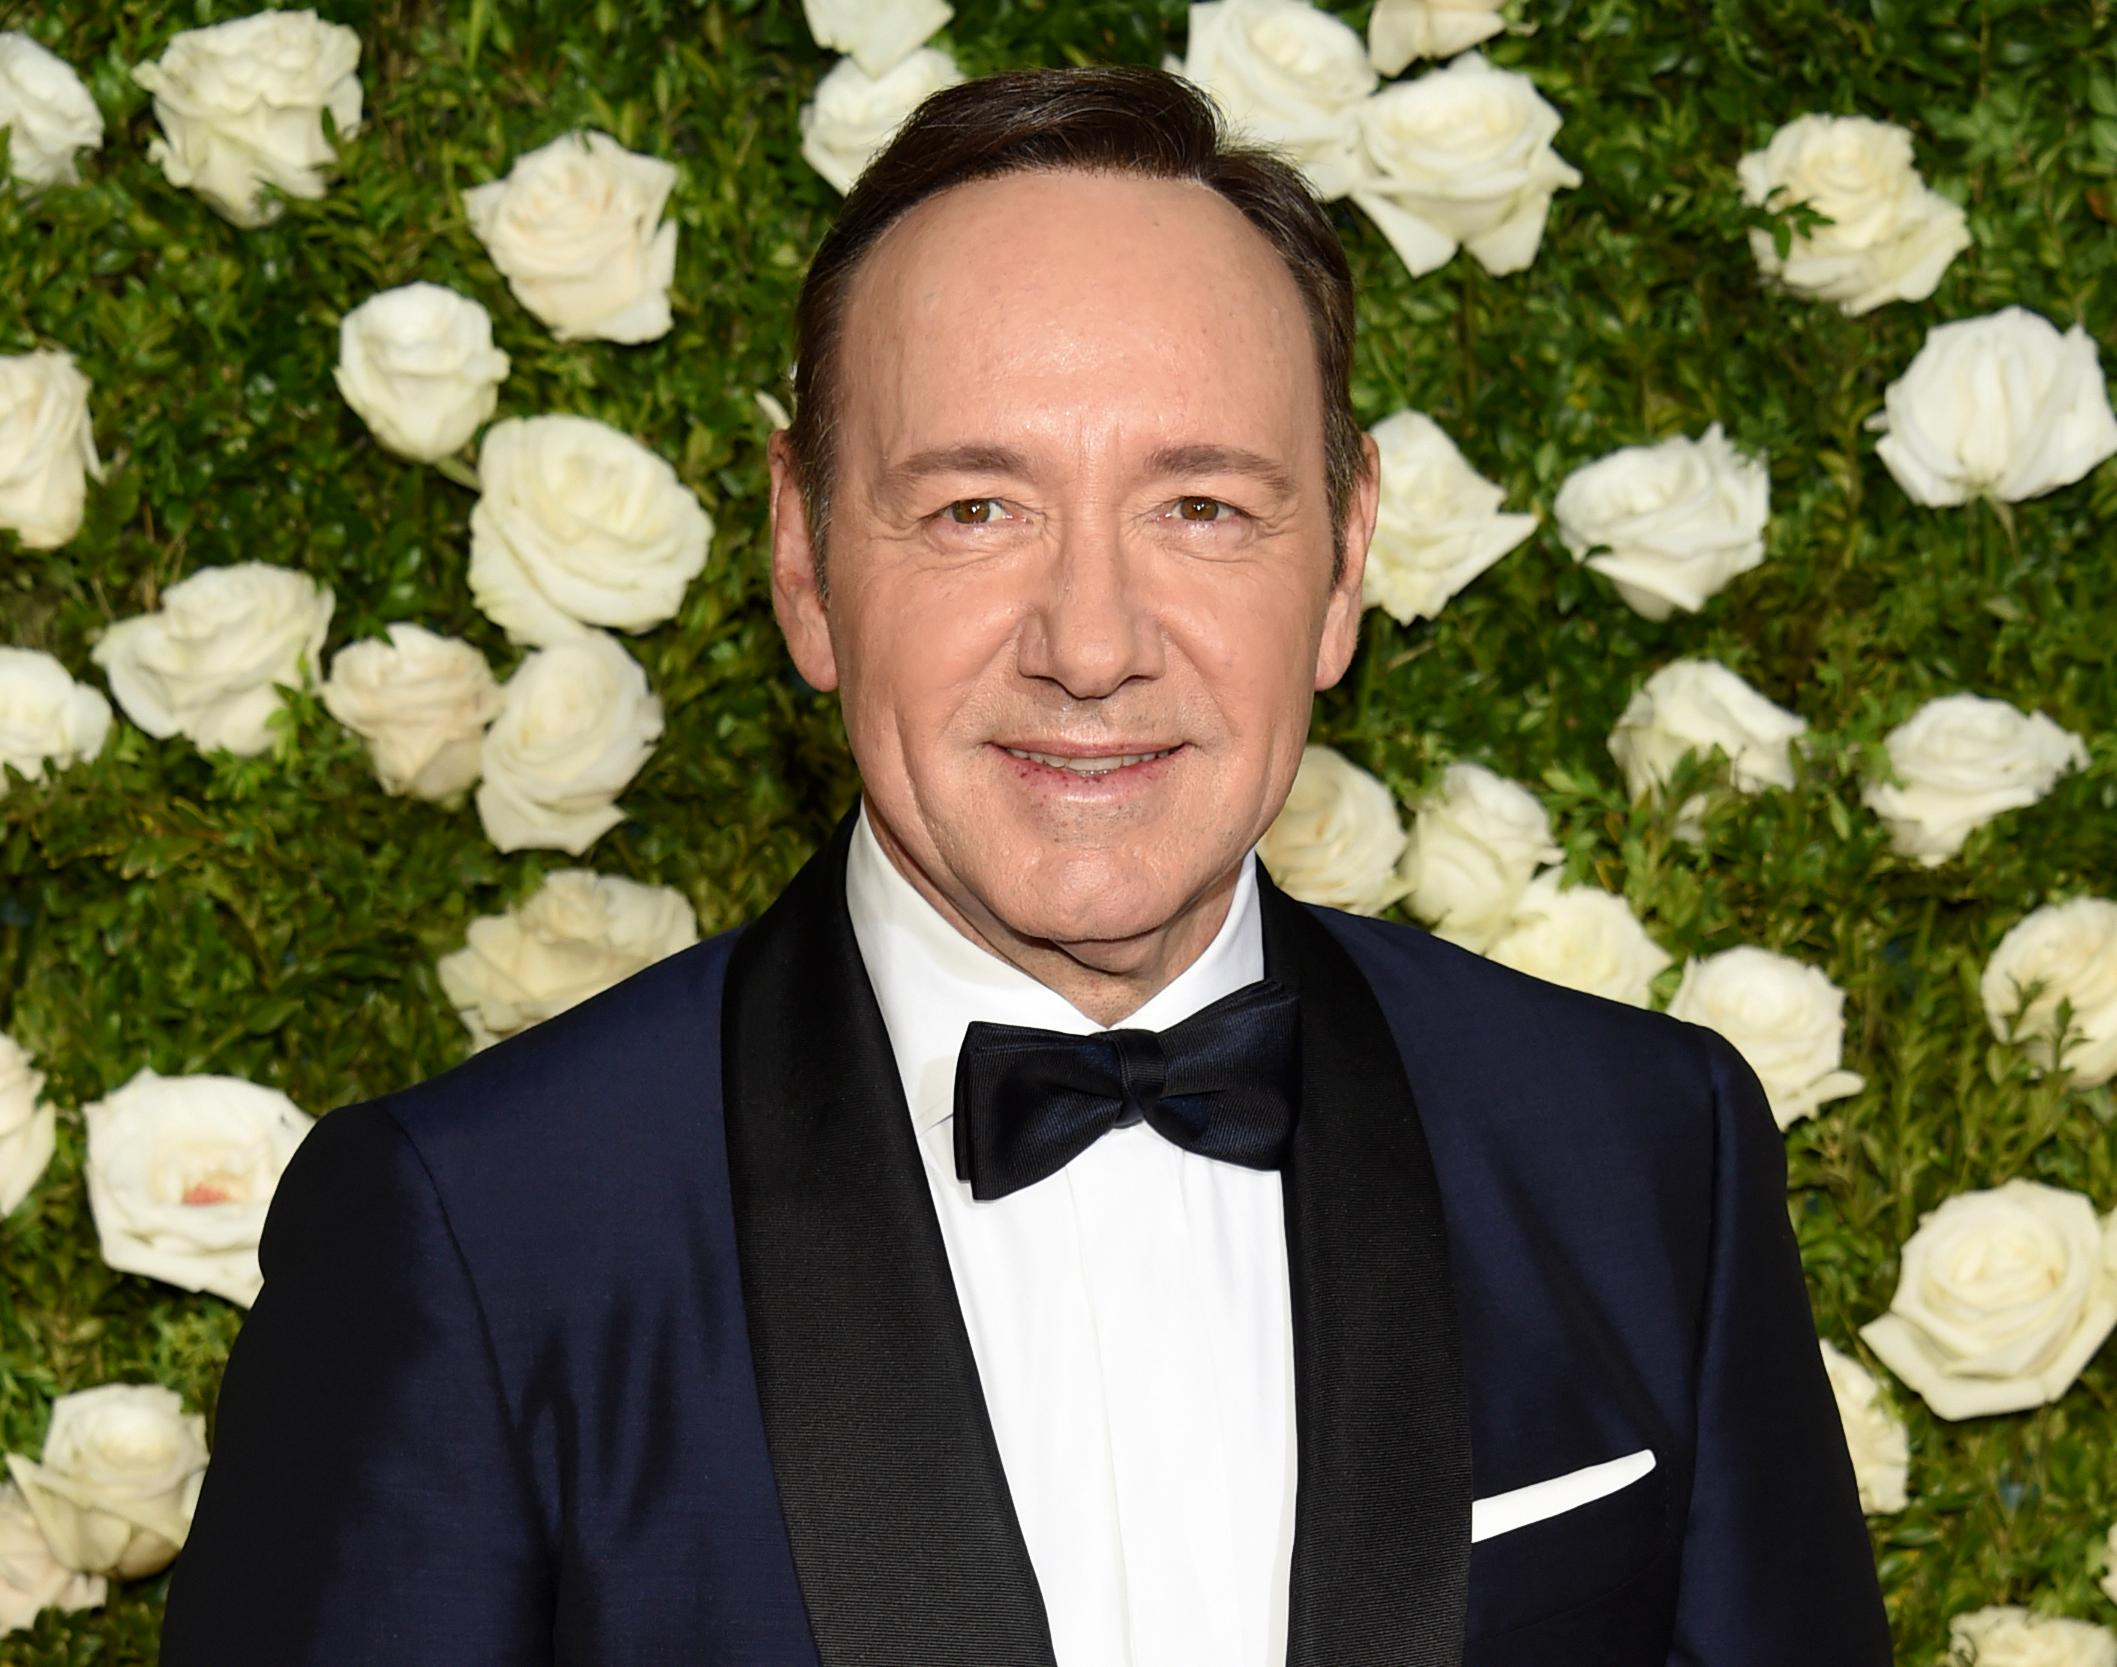 "FILE - In this June 11, 2017 file photo, Kevin Spacey arrives at the 71st annual Tony Awards at Radio City Music Hall in New York. The sexual harassment and assault allegations against Harvey Weinstein that rocked Hollywood and sparked a flurry of allegations in other American industries, as well as the political arena, are reaching far beyond U.S. borders. Emboldened by the women, and men, who have spoken up, the ""Weinstein Effect"" is rippling across the globe. London was for many years a base for actor Spacey, who served as artistic director of the Old Vic theater from 2004 until 2015. The allegations of sexual harassment that have surfaced in recent weeks, including some during his tenure at the Old Vic, have cast a pall over his tenure. (Photo by Evan Agostini/Invision/AP, File)"